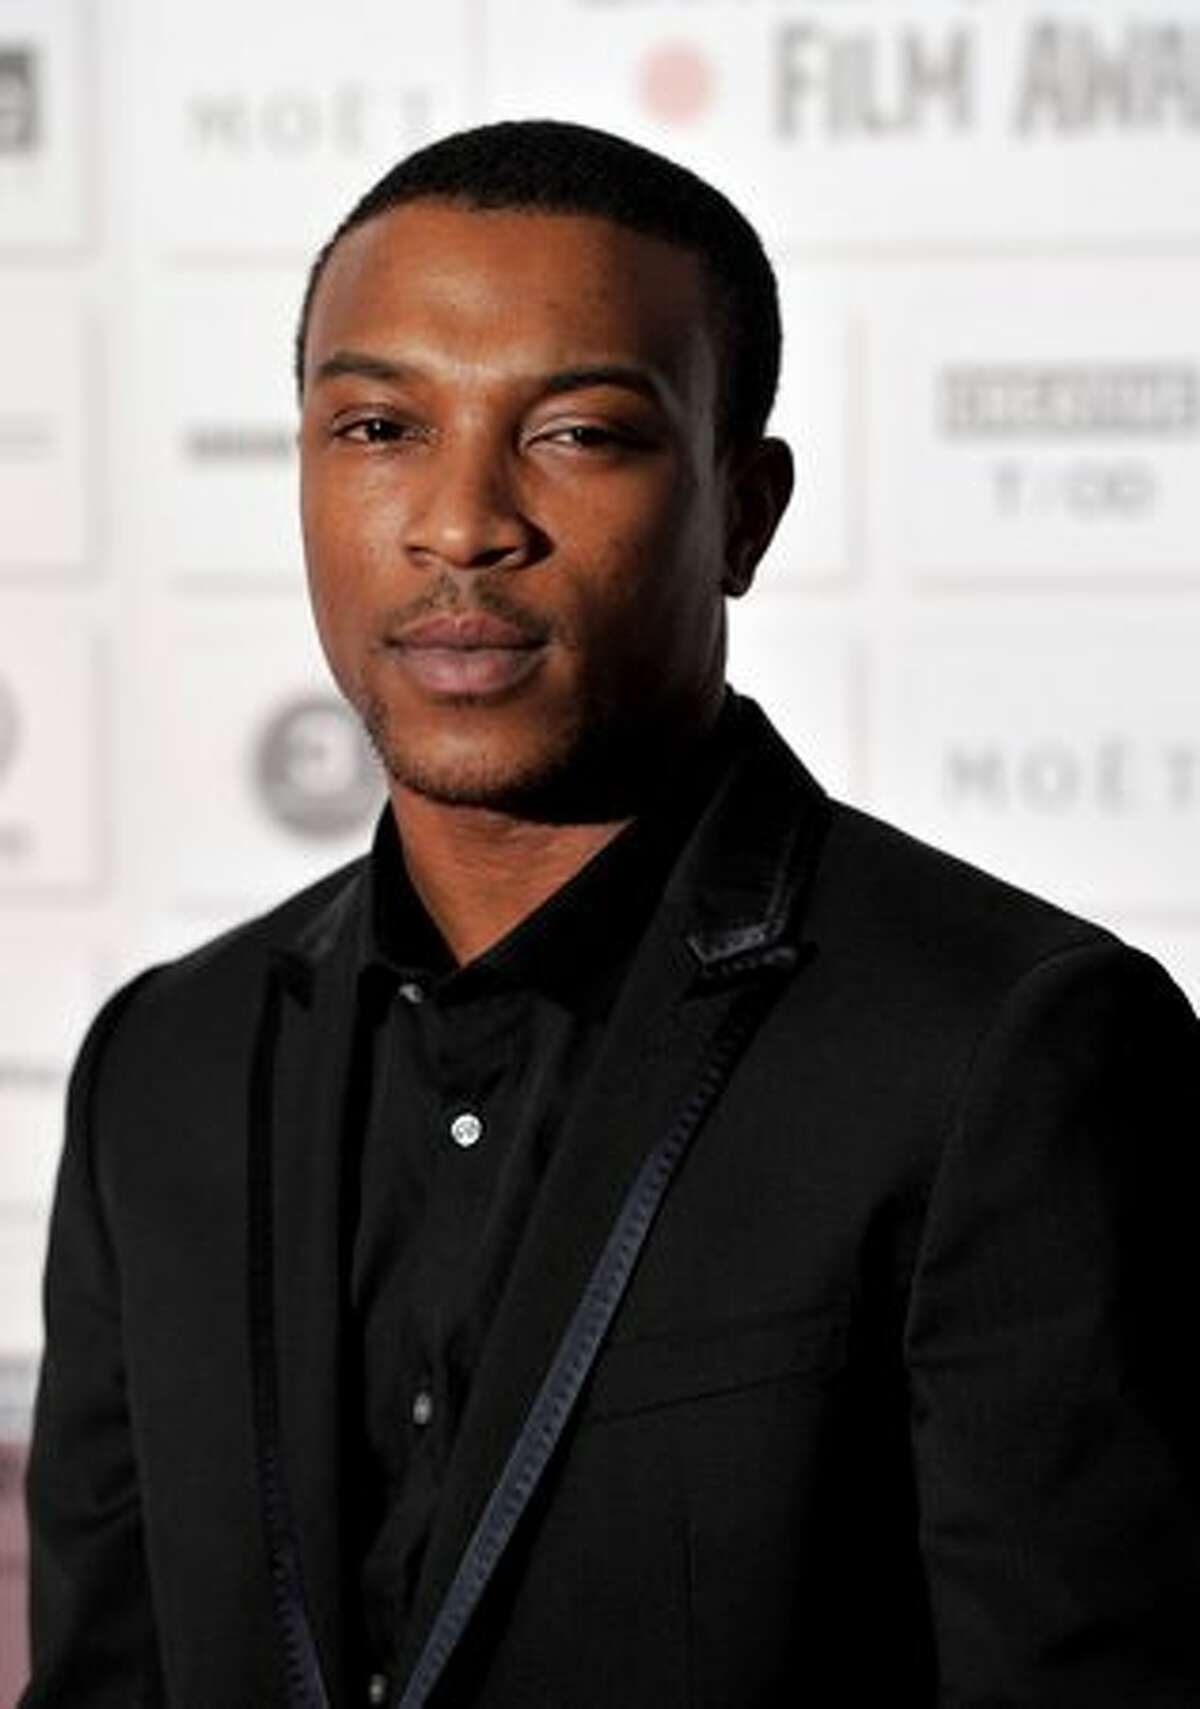 Actor Ashley Walters attends the Moet British Independent Film Awards at Old Billingsgate Market in London, England.